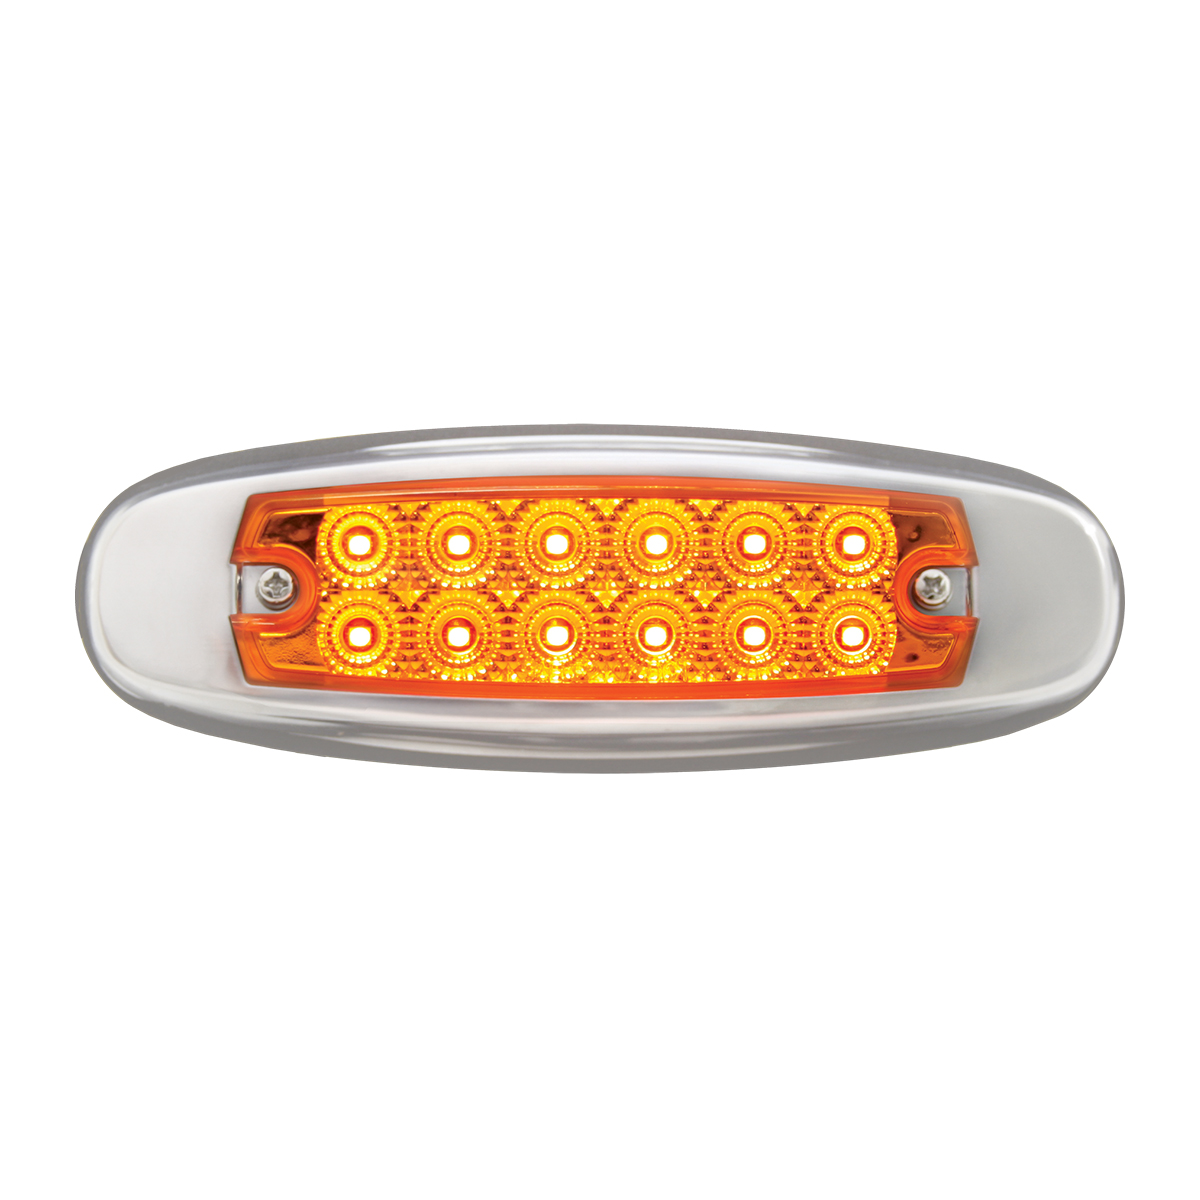 78565 Ultra Thin Spyder LED Marker Light w/ Stainless Steel Bezel